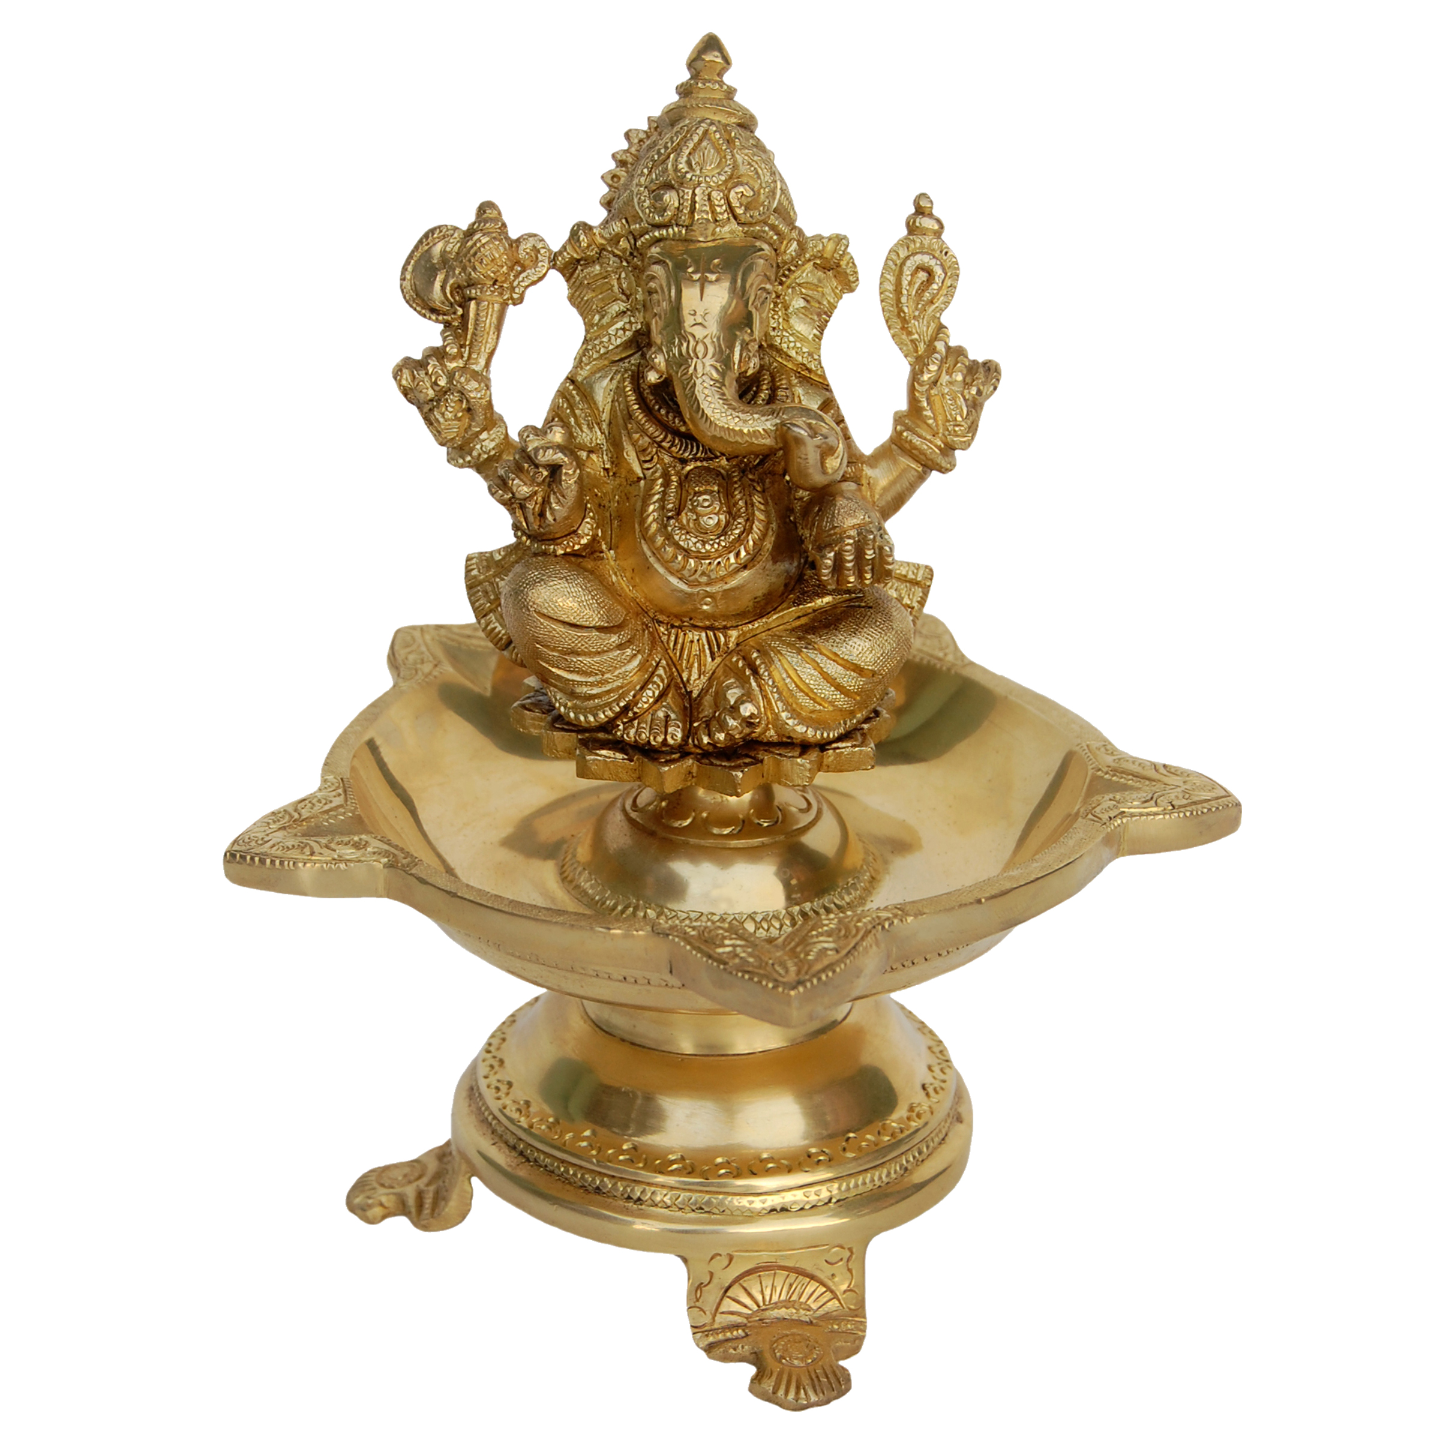 Brass Diya Oil Lamp of Lord Ganesha - 8 Inch BS1177 A